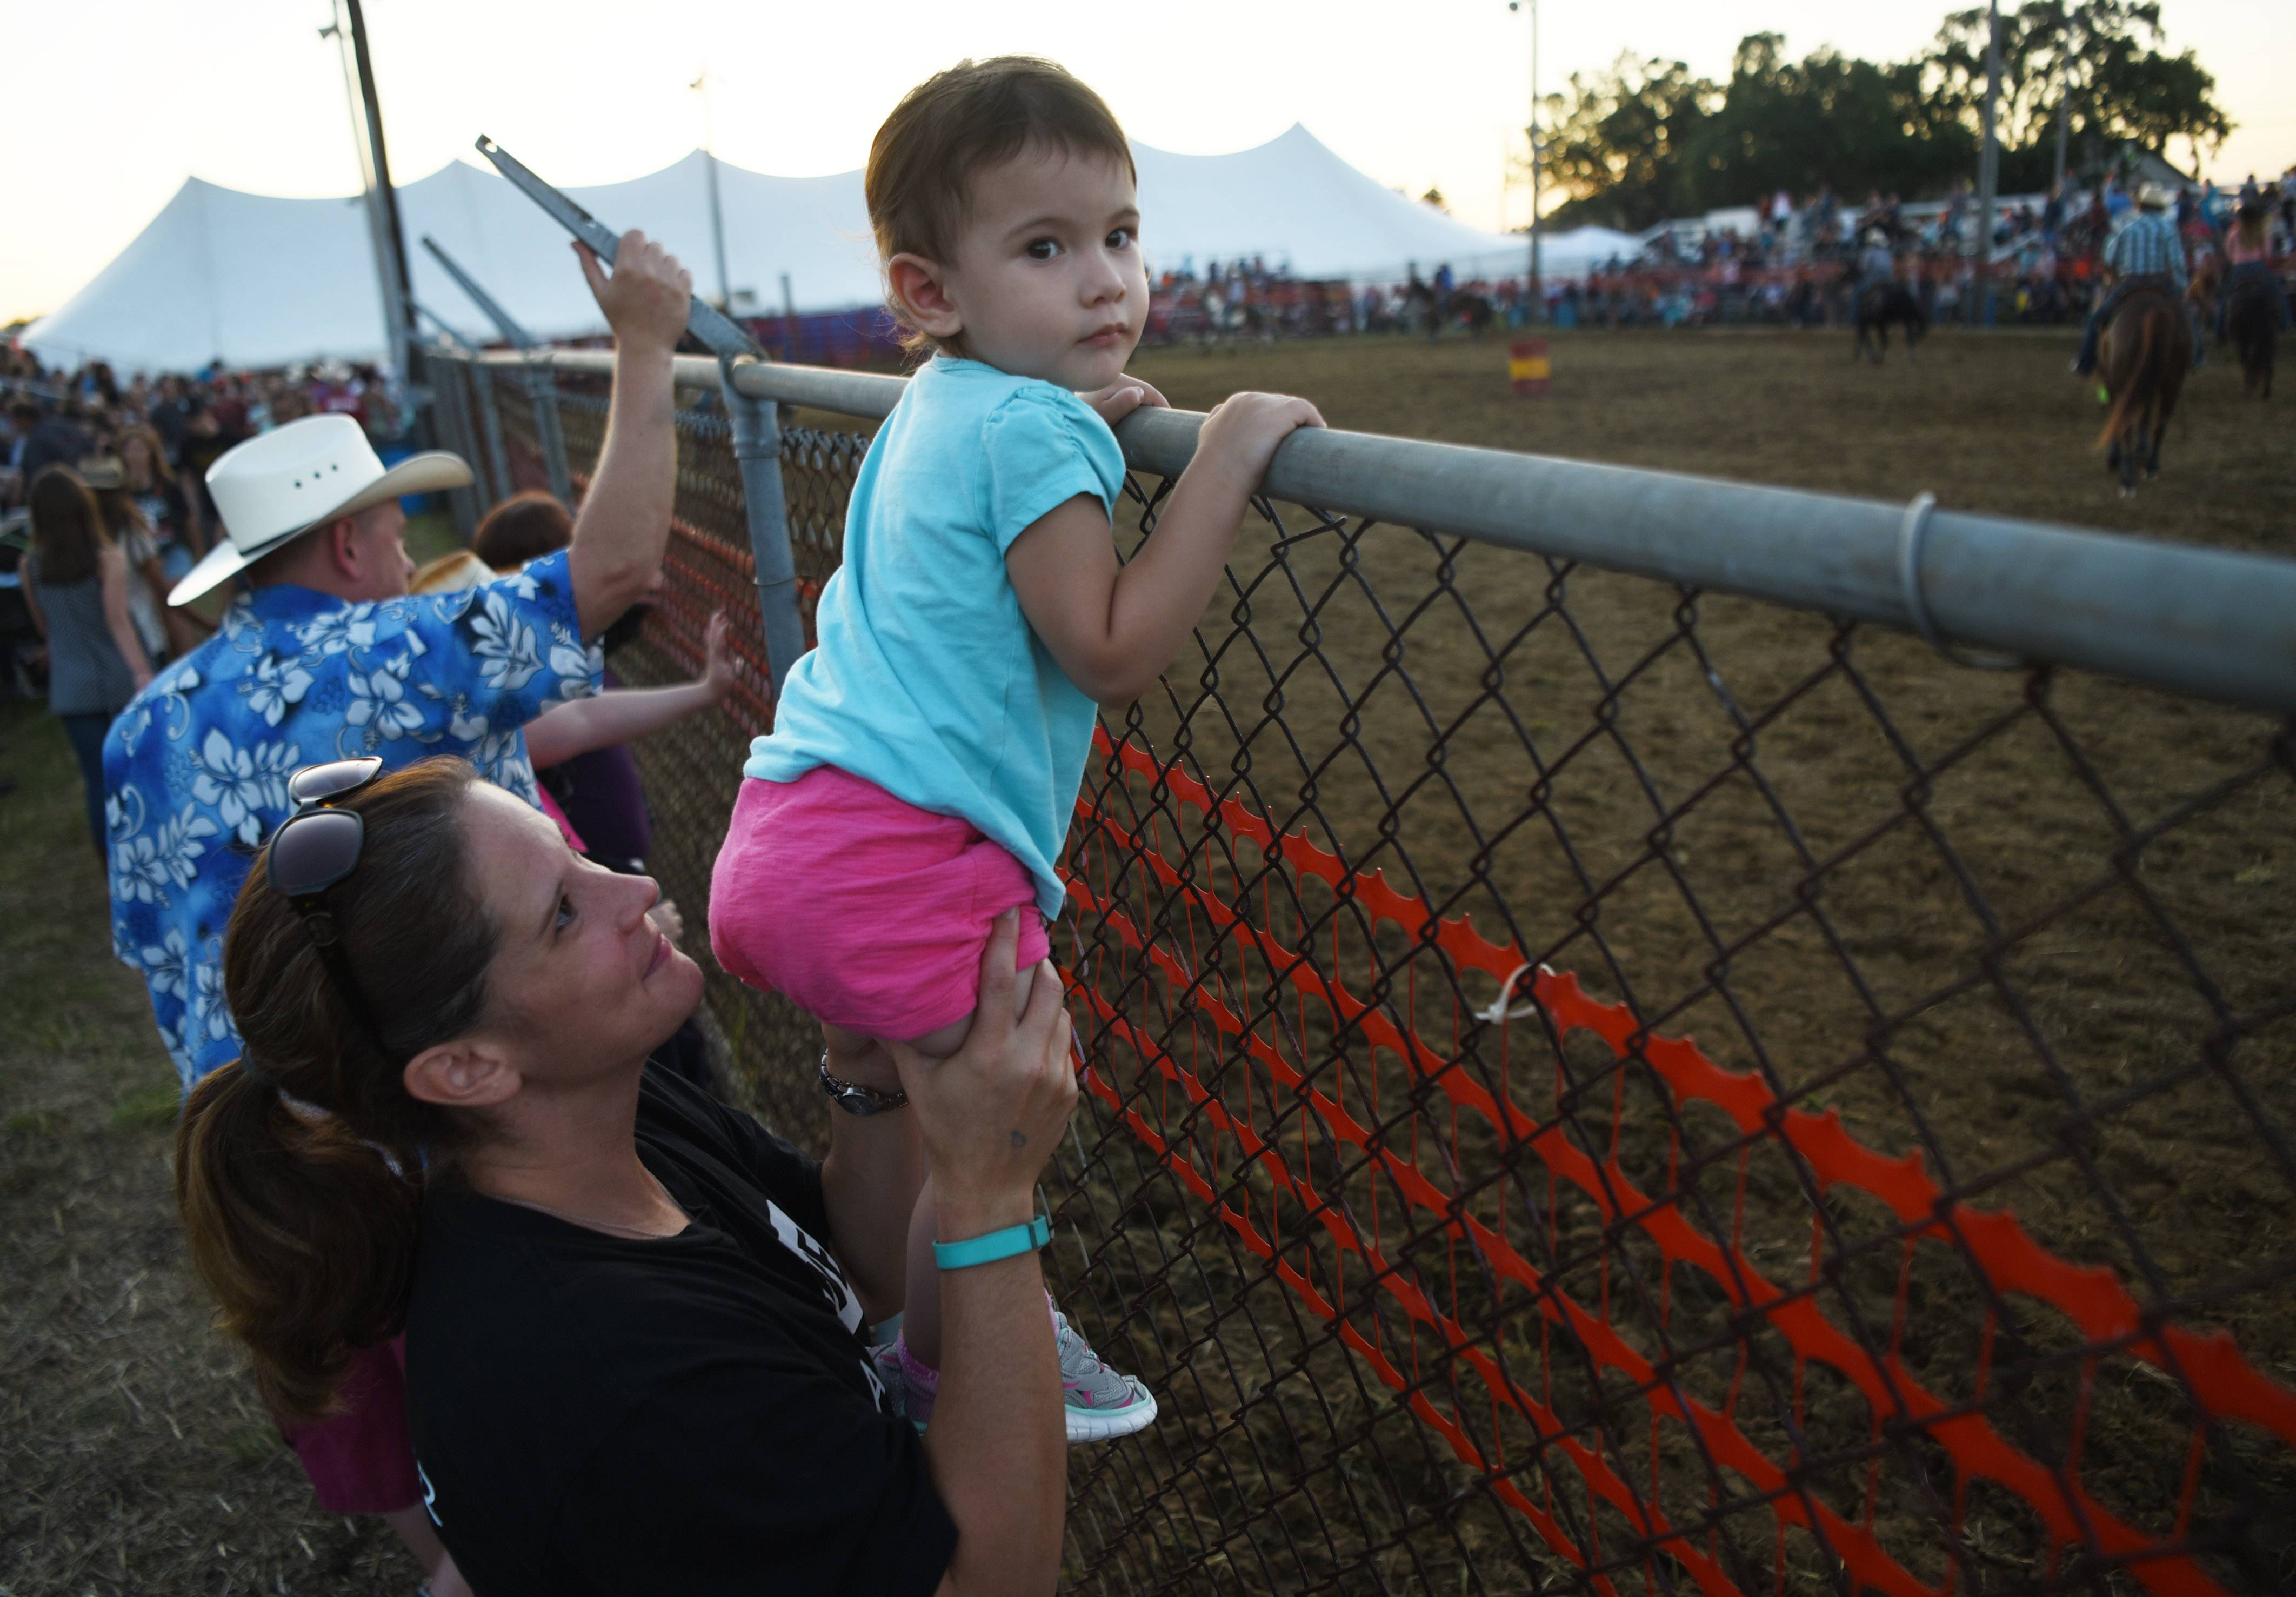 Emma Saldana, 2, of Wauconda gets a good look at the horses while getting a boost from her mom, Katie, during intermission at the 54th annual IPRA Championship rodeo Saturday in Wauconda.